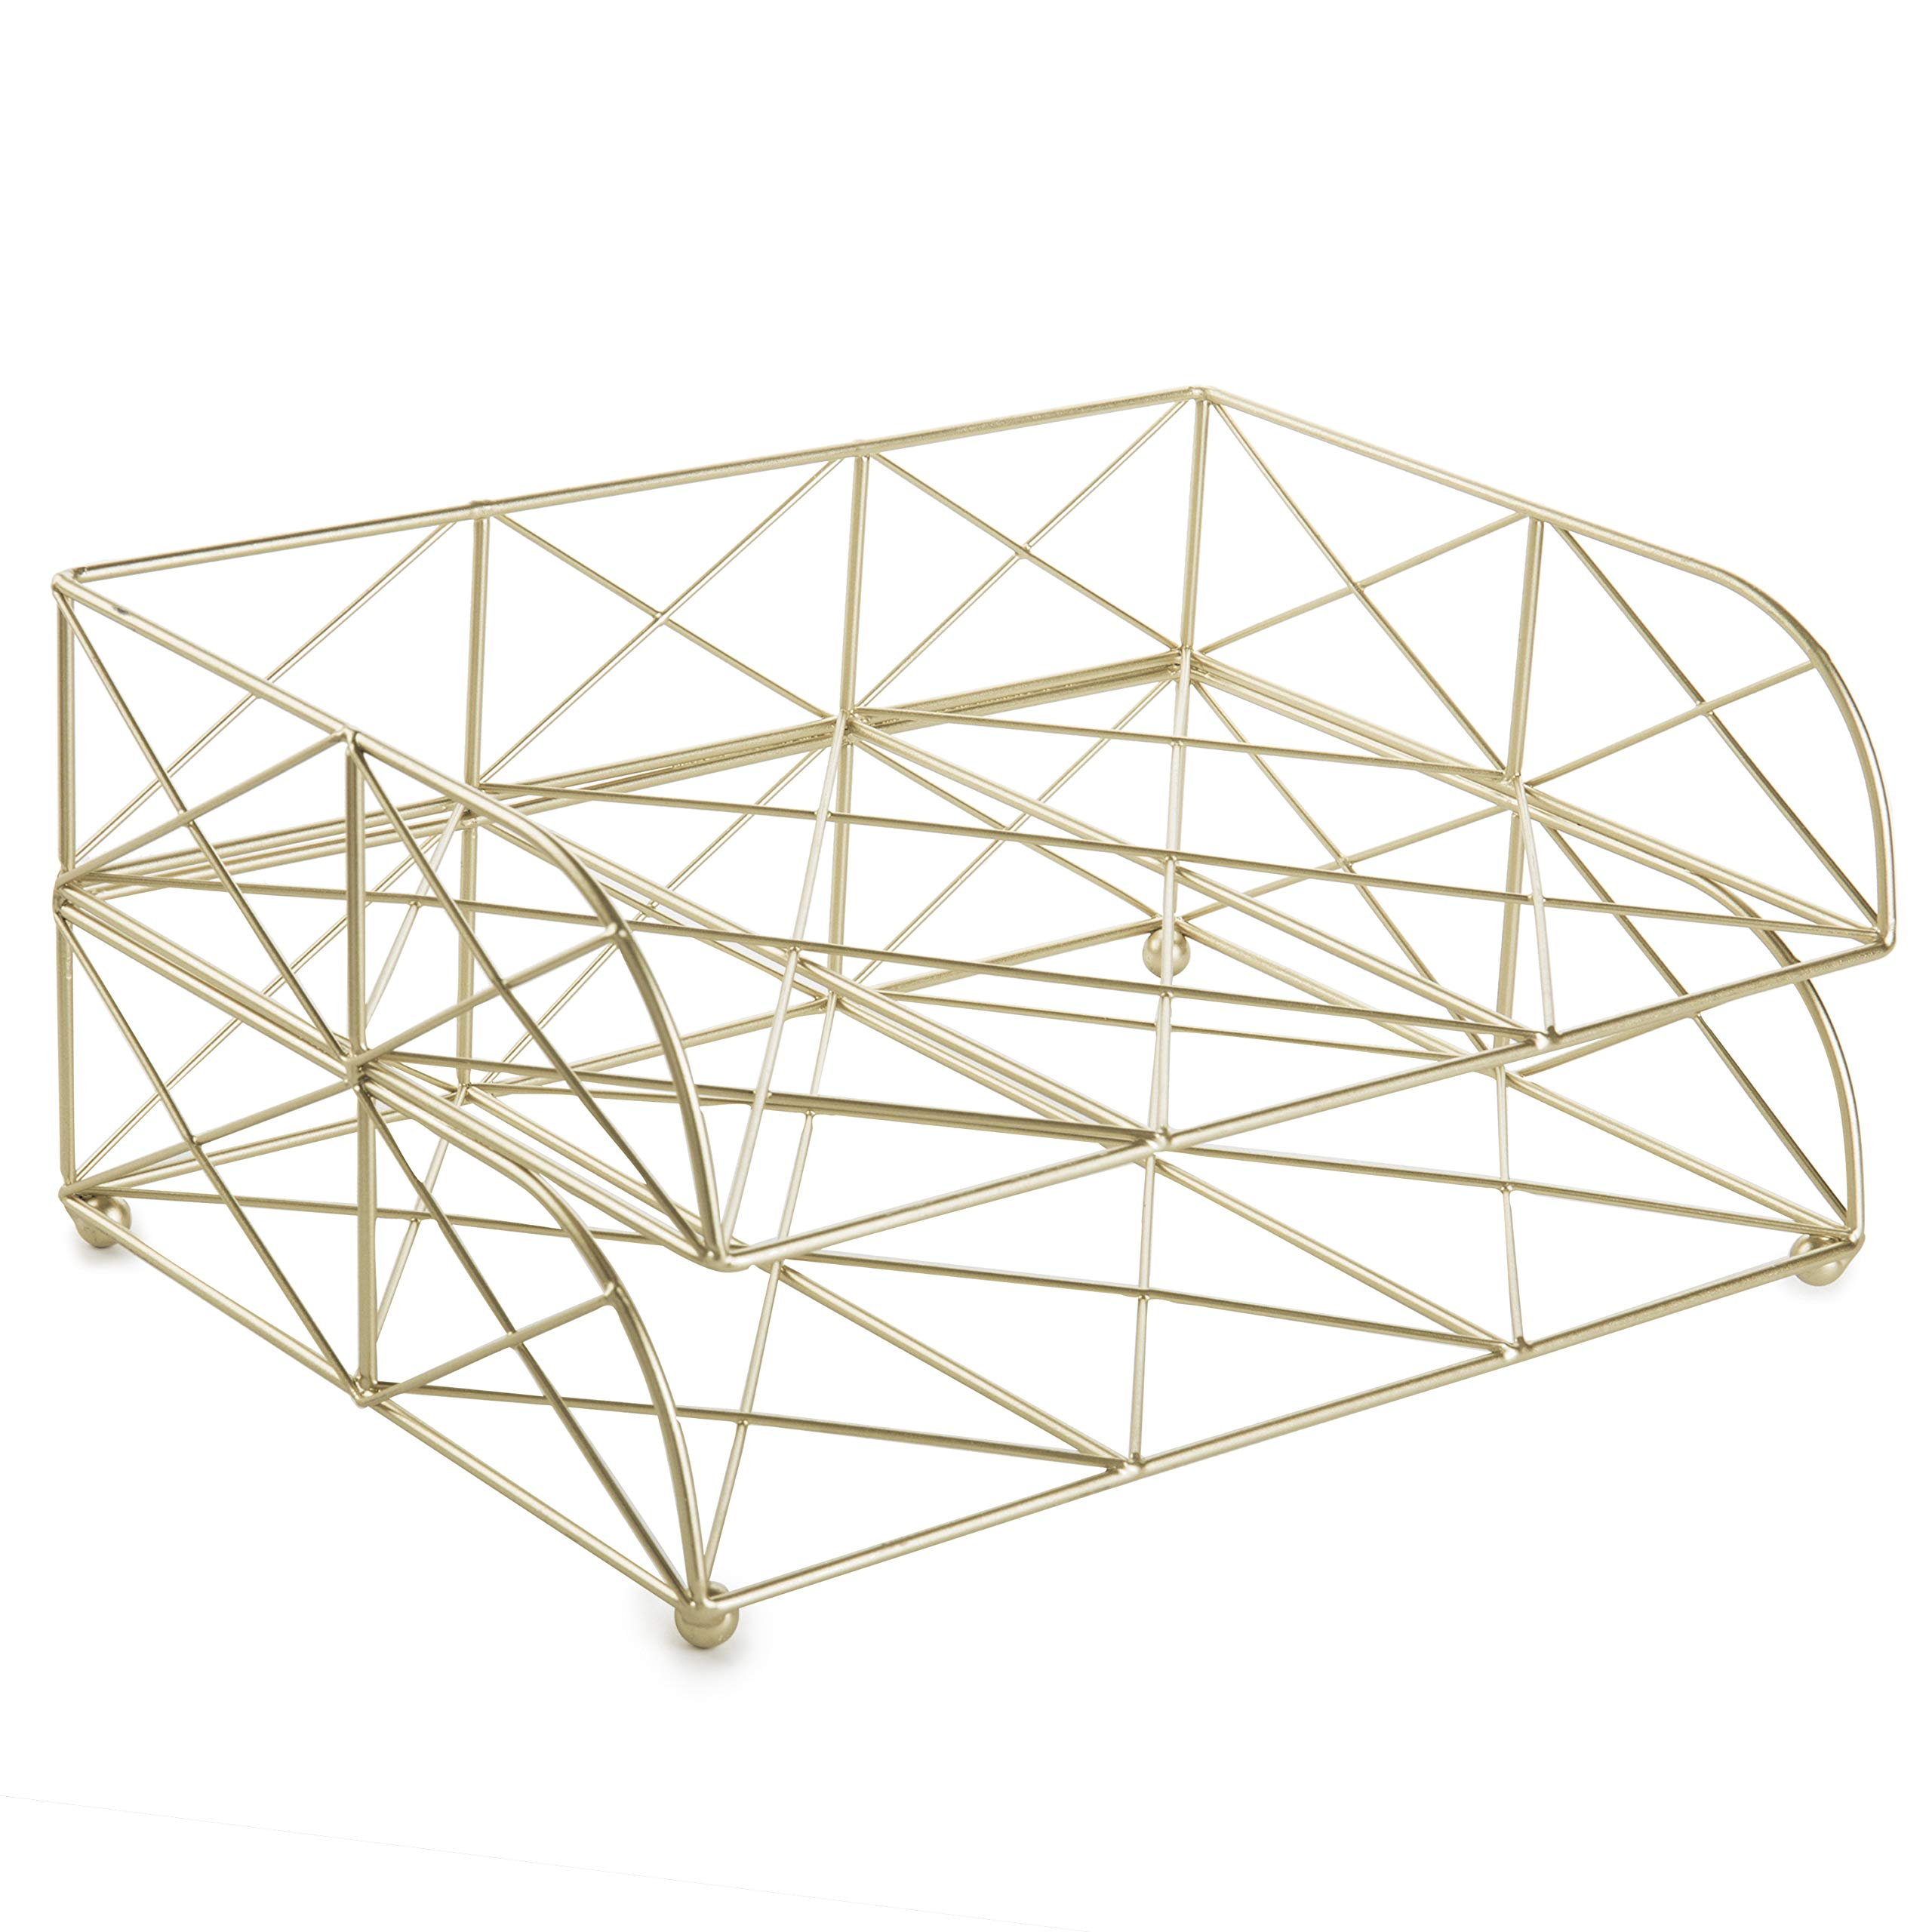 MyGift 2-Tier Geometric Light Gold-Tone Metal Desktop Stacked Letter Tray by MyGift (Image #5)